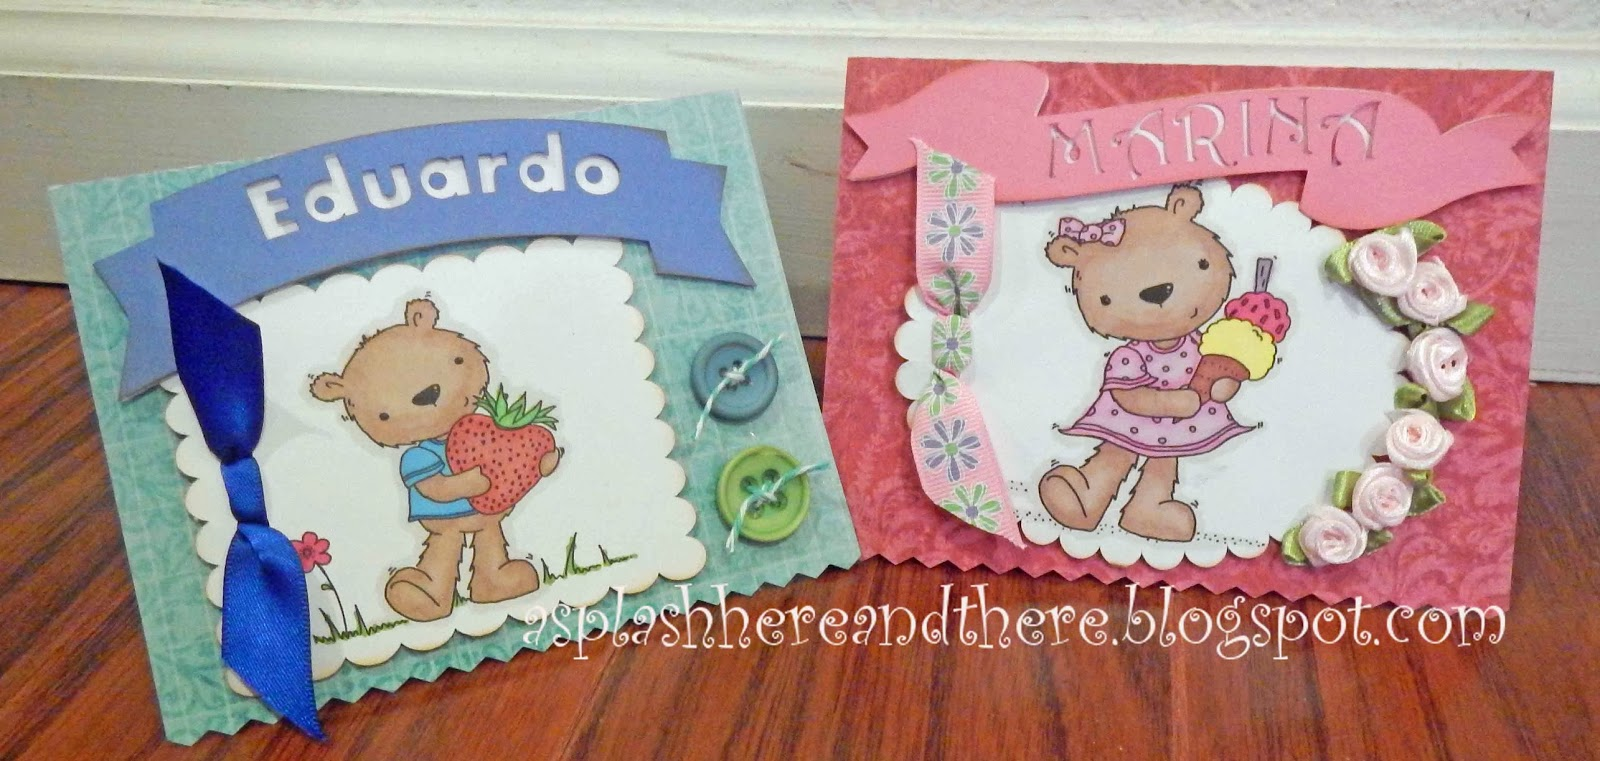 His And Hers Twin Birthday Cards